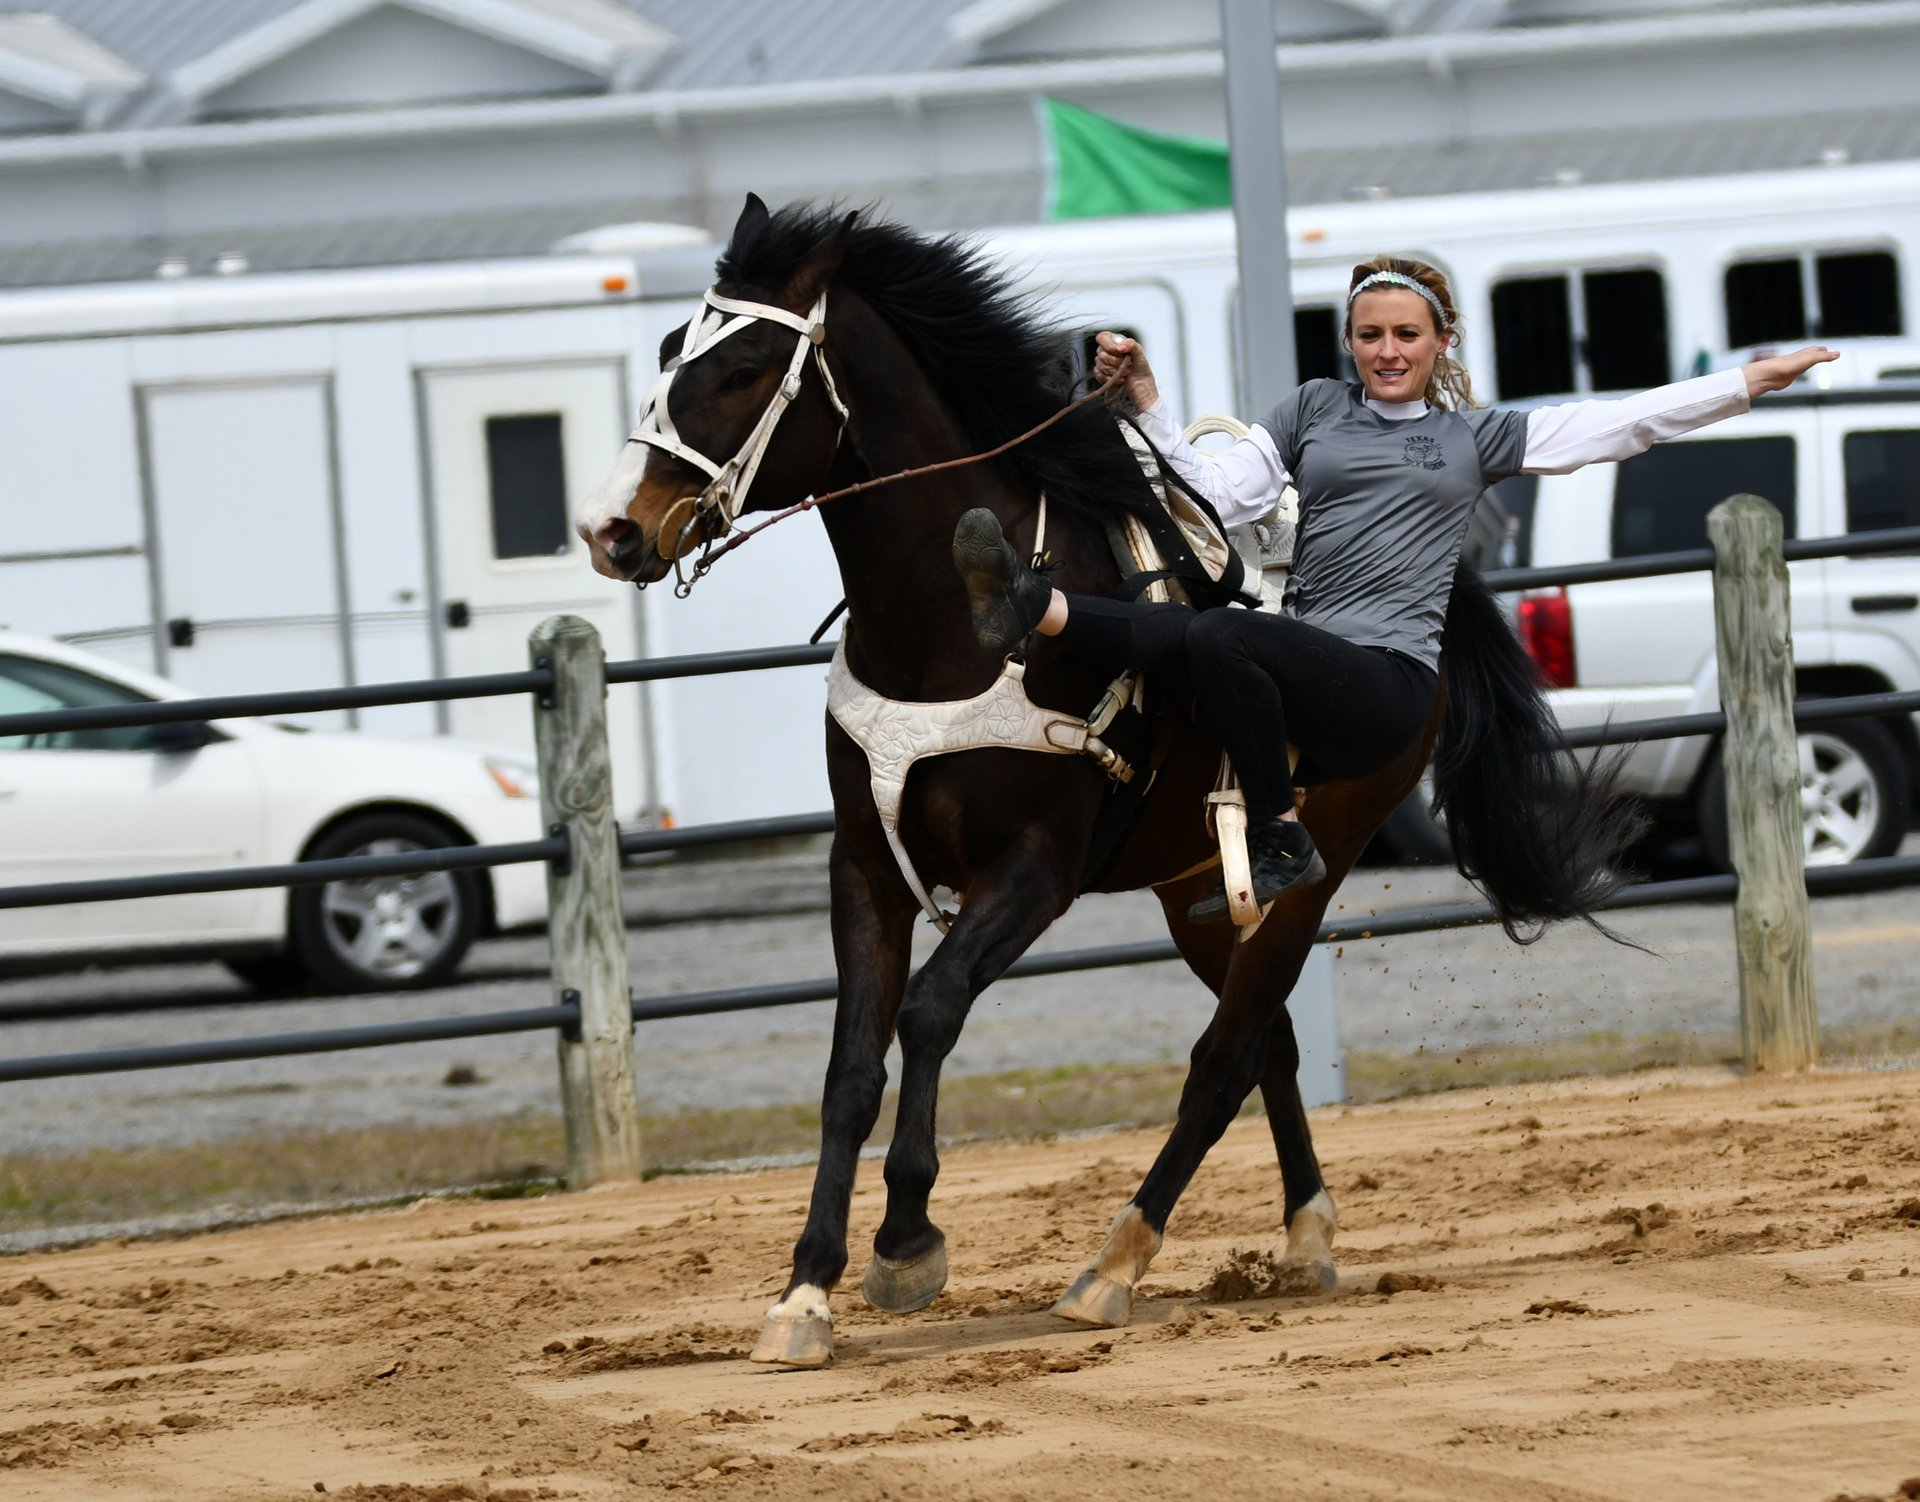 Virginia Horse Festival in Virginia - Best Season 2020